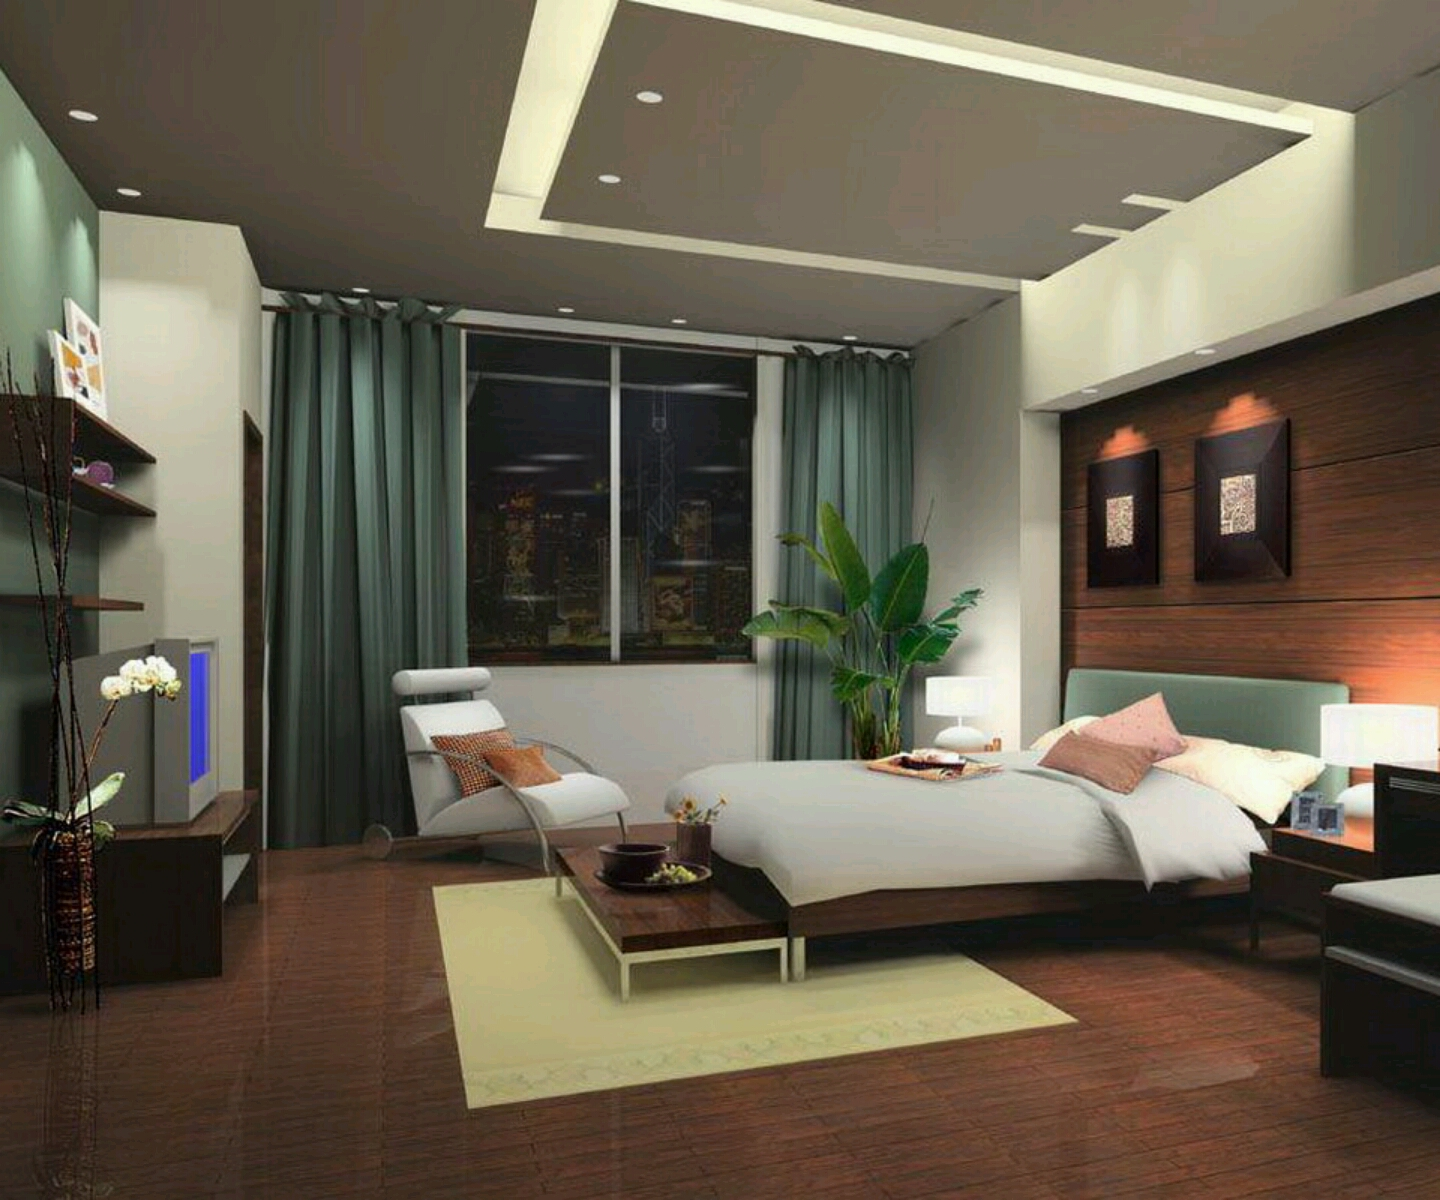 New home designs latest modern bedrooms designs best ideas - Modern small bedroom decoration ...